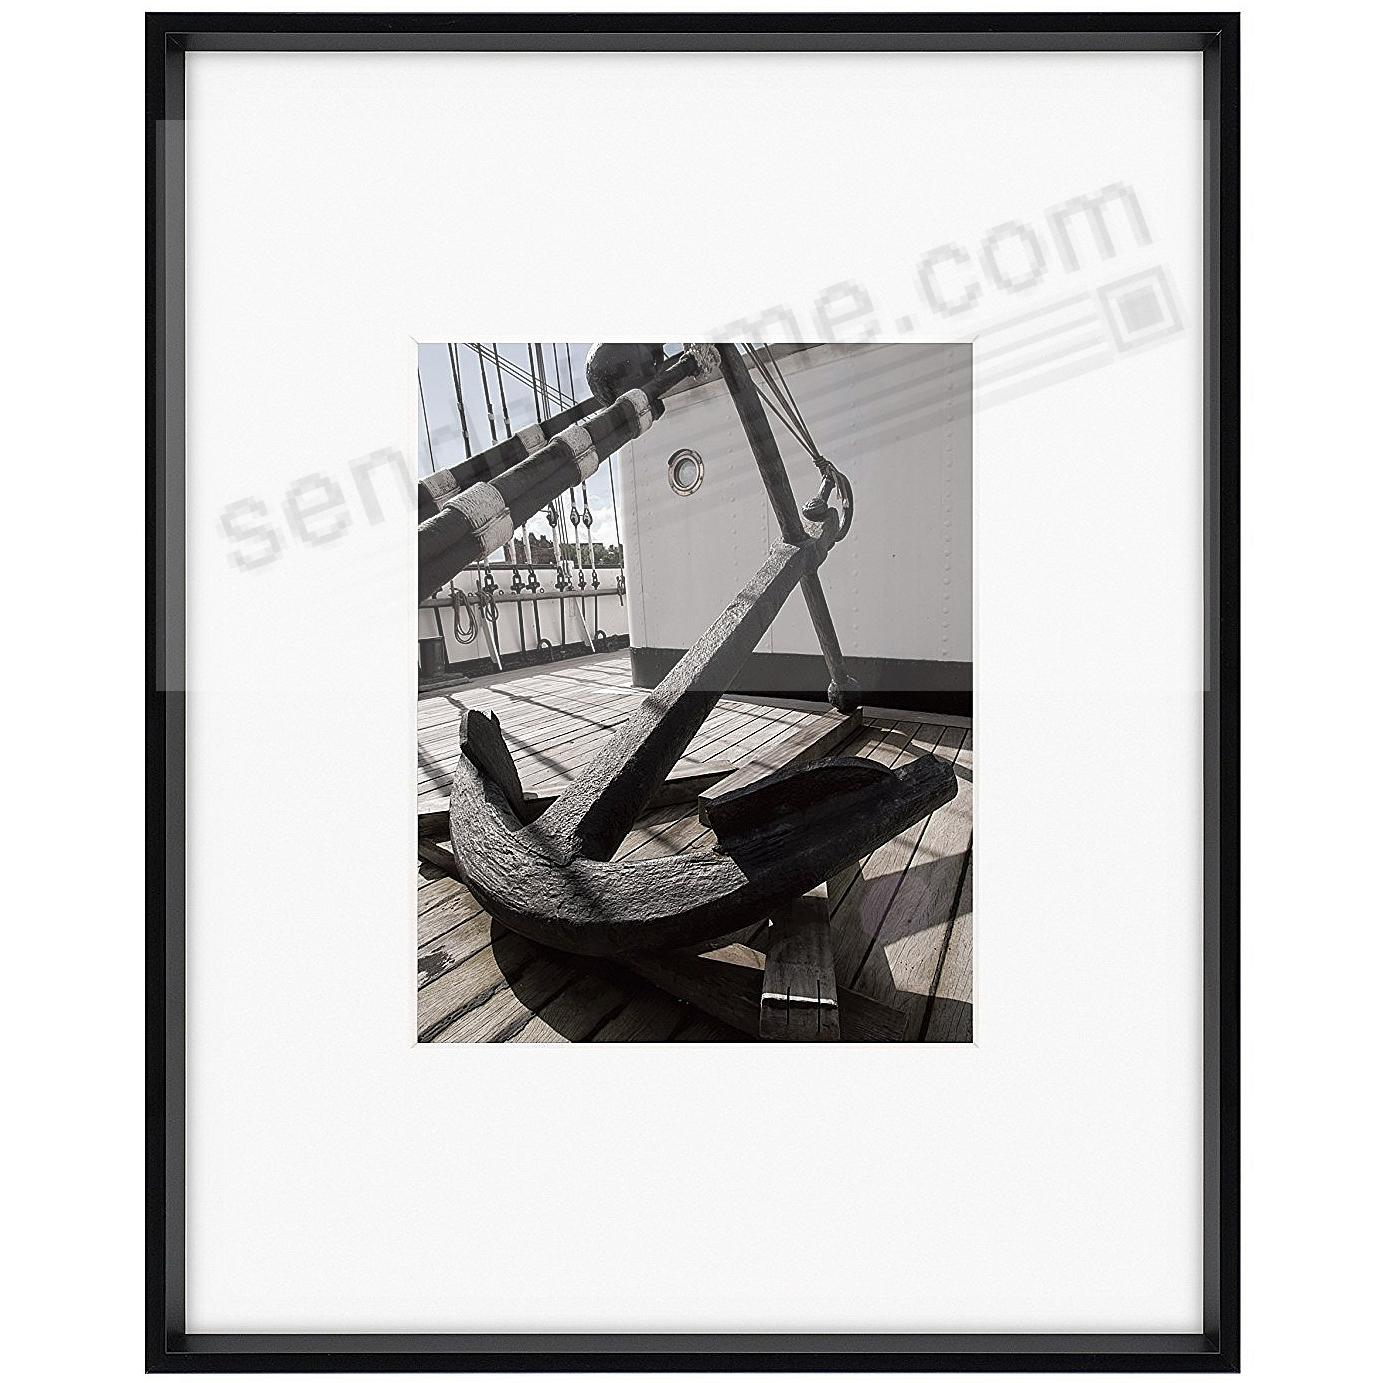 GALLERY matted Matte-Black metallic frame 16x20/8x10 from ARTCARE ...